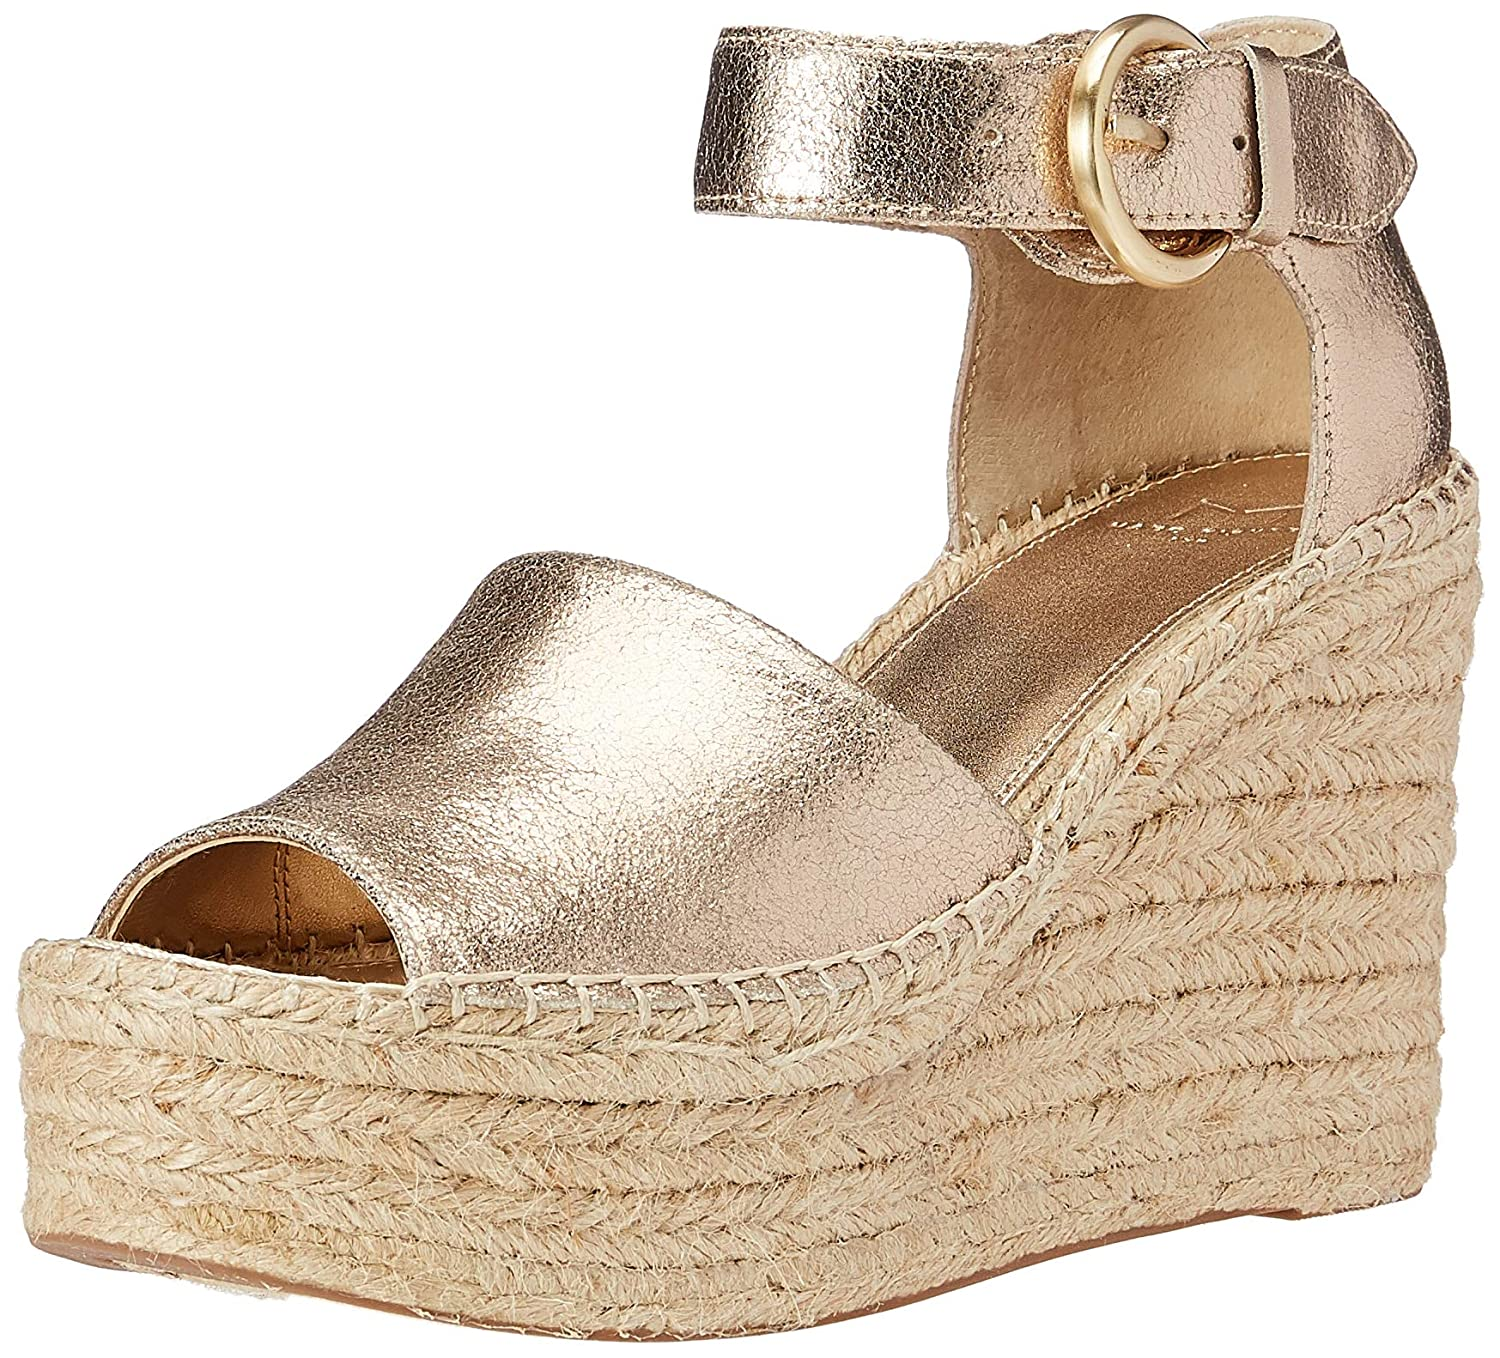 gold Leather Marc Fisher Ltd Womens Alida Espadrille Wedge